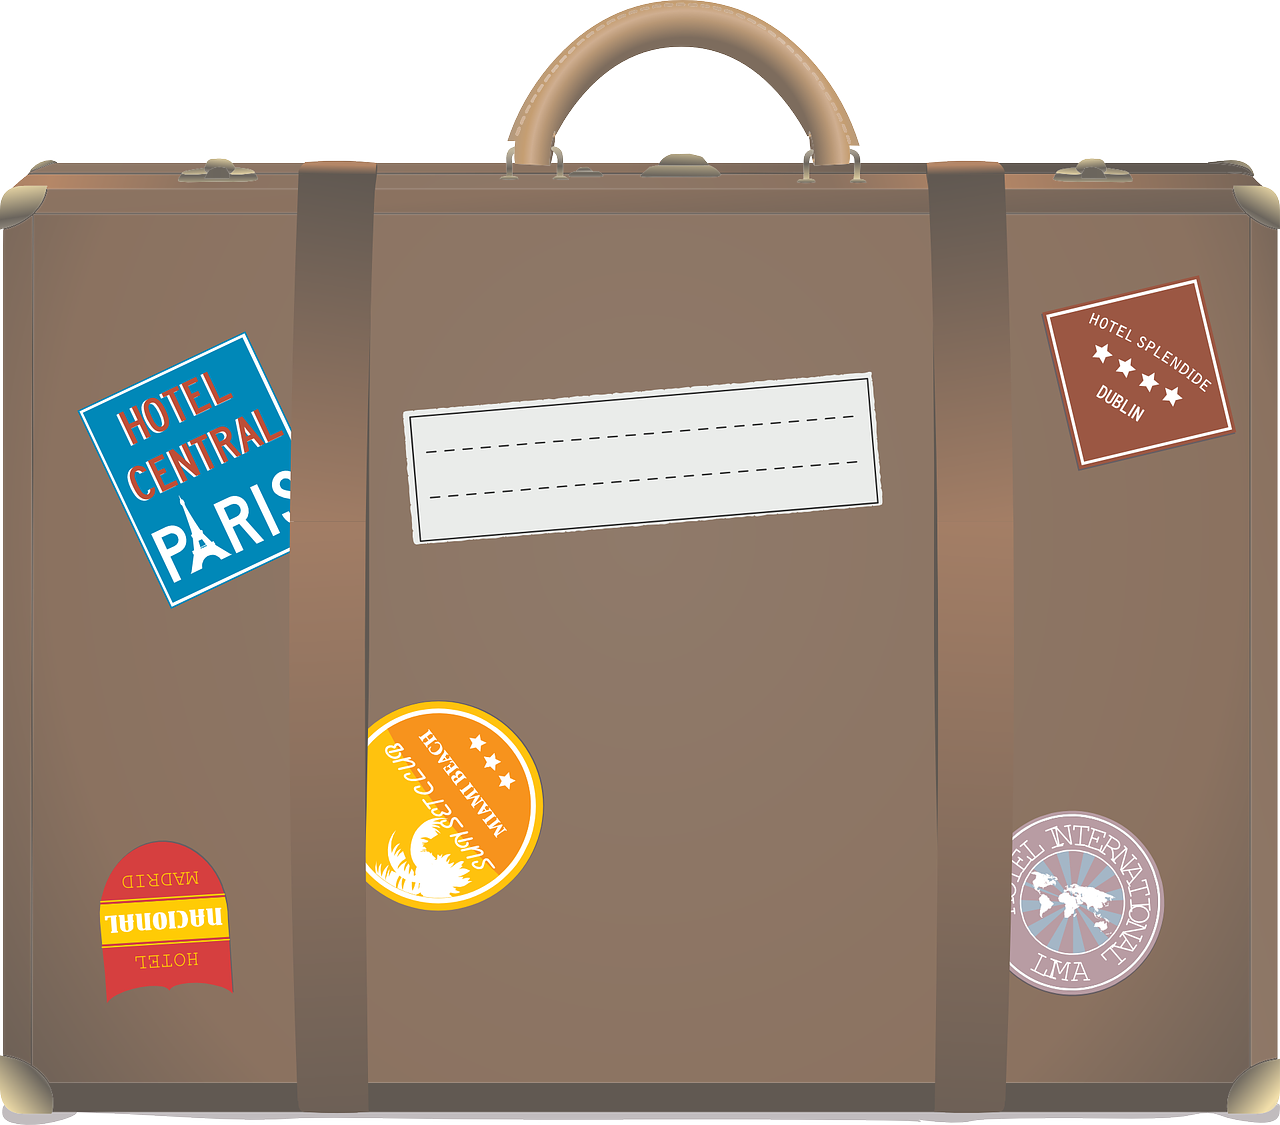 suitcase-159615_1280.png